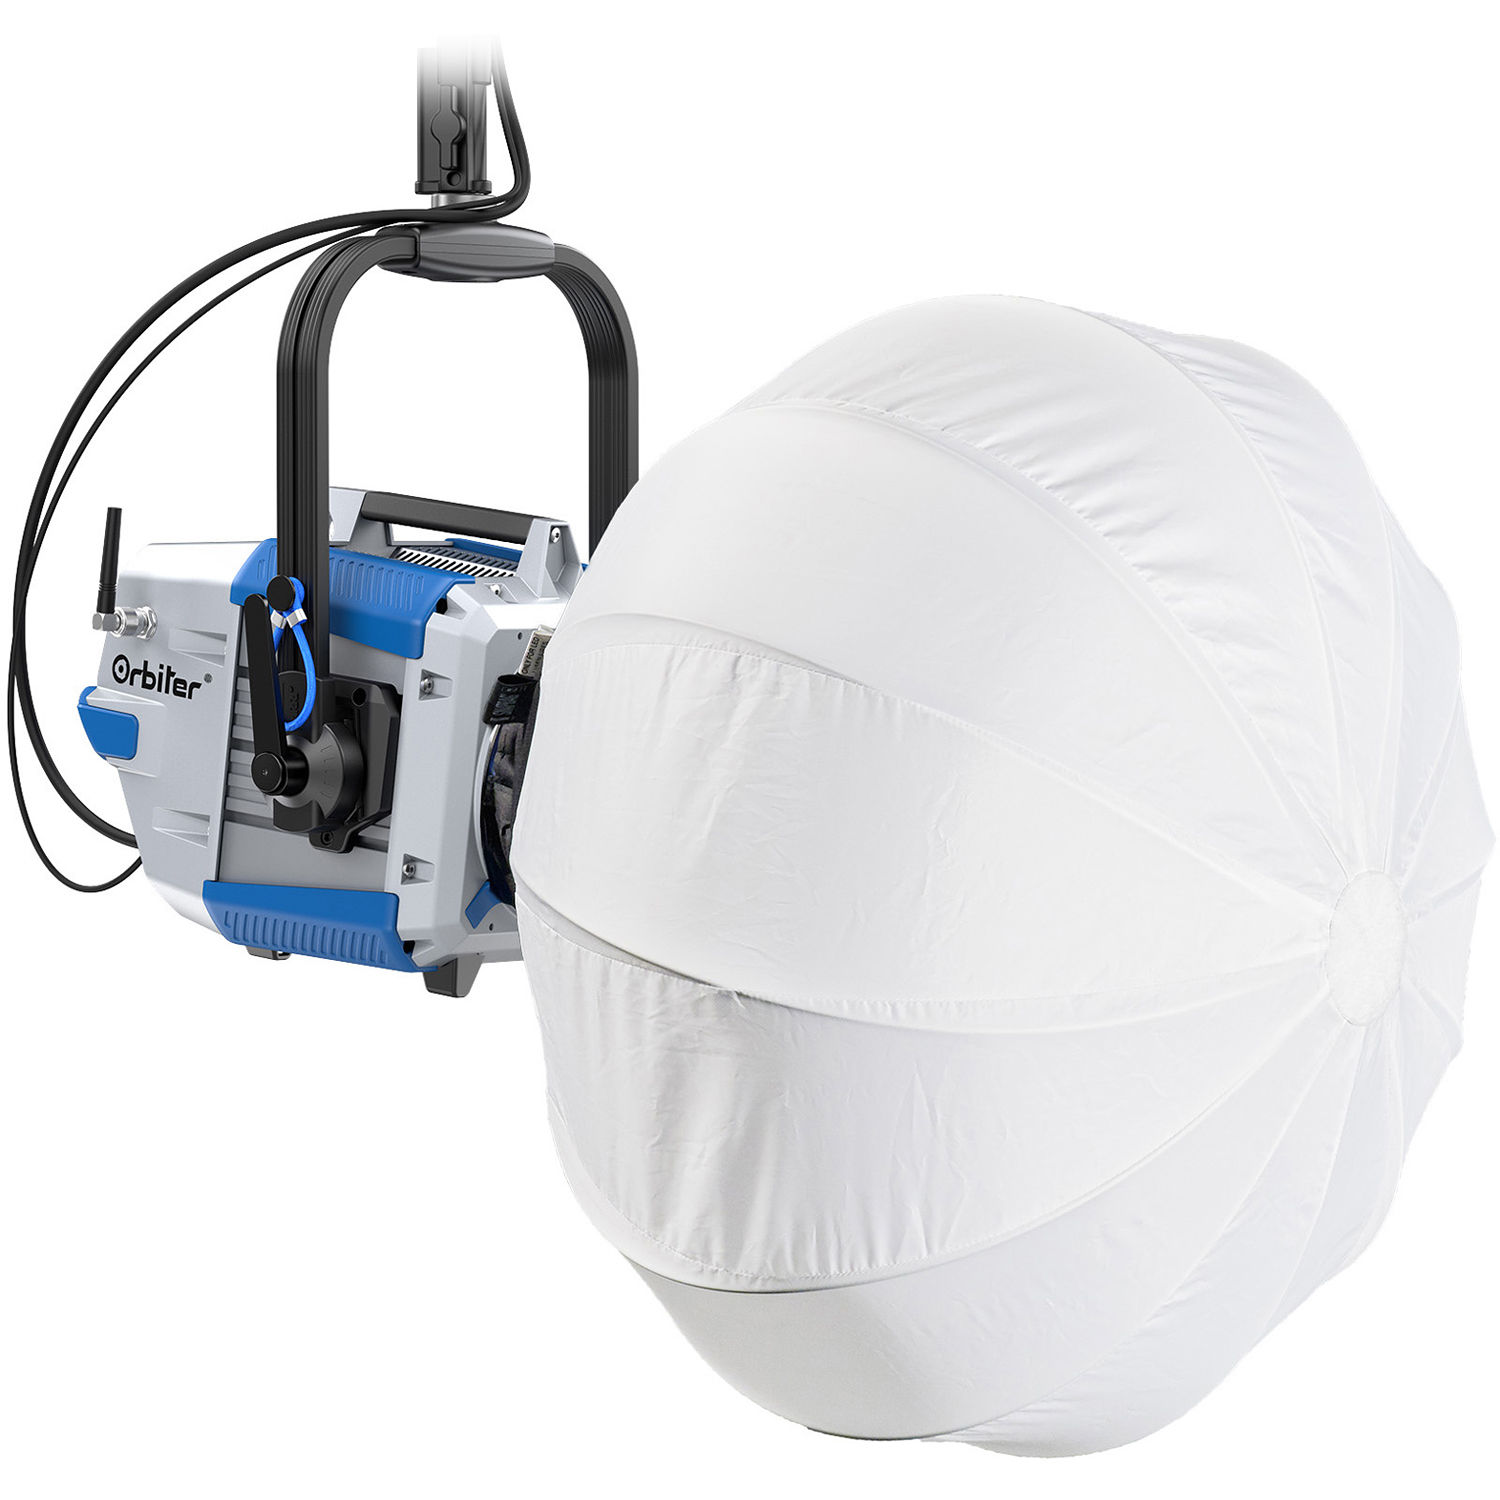 ARRI ORBITER Dome M Ultra-Bright, Tunable and Directional LED Light DoPchoice - Blue/Silver, Schuko